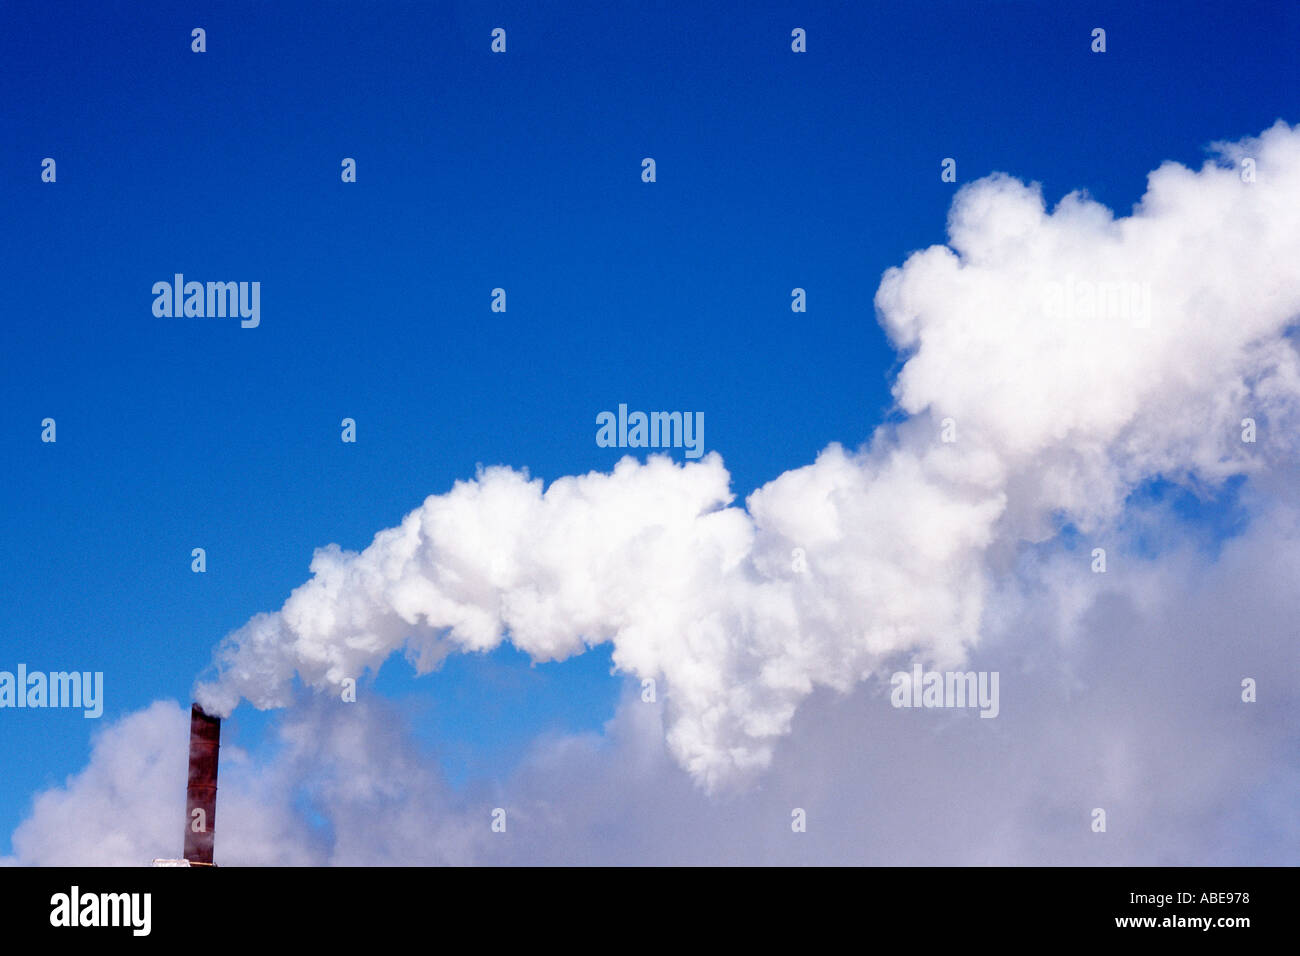 Fumes coming out of a factory chimney - Stock Image